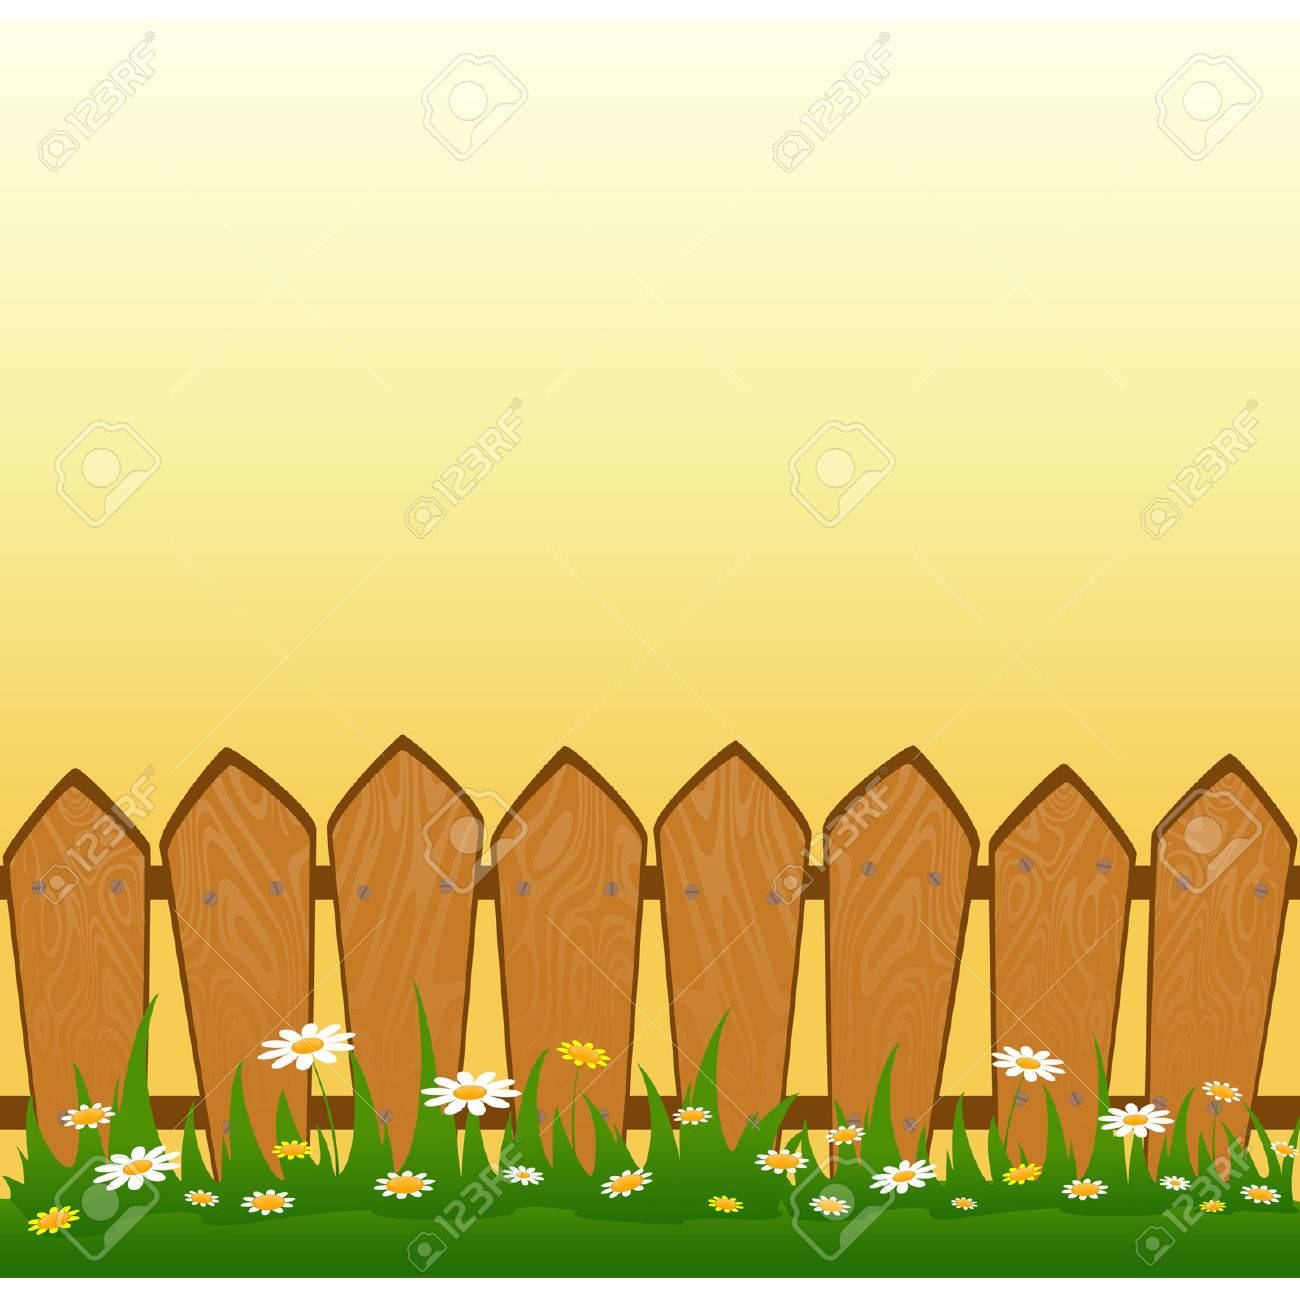 Farm Fence Clipart country fence royalty free cliparts, vectors, and stock